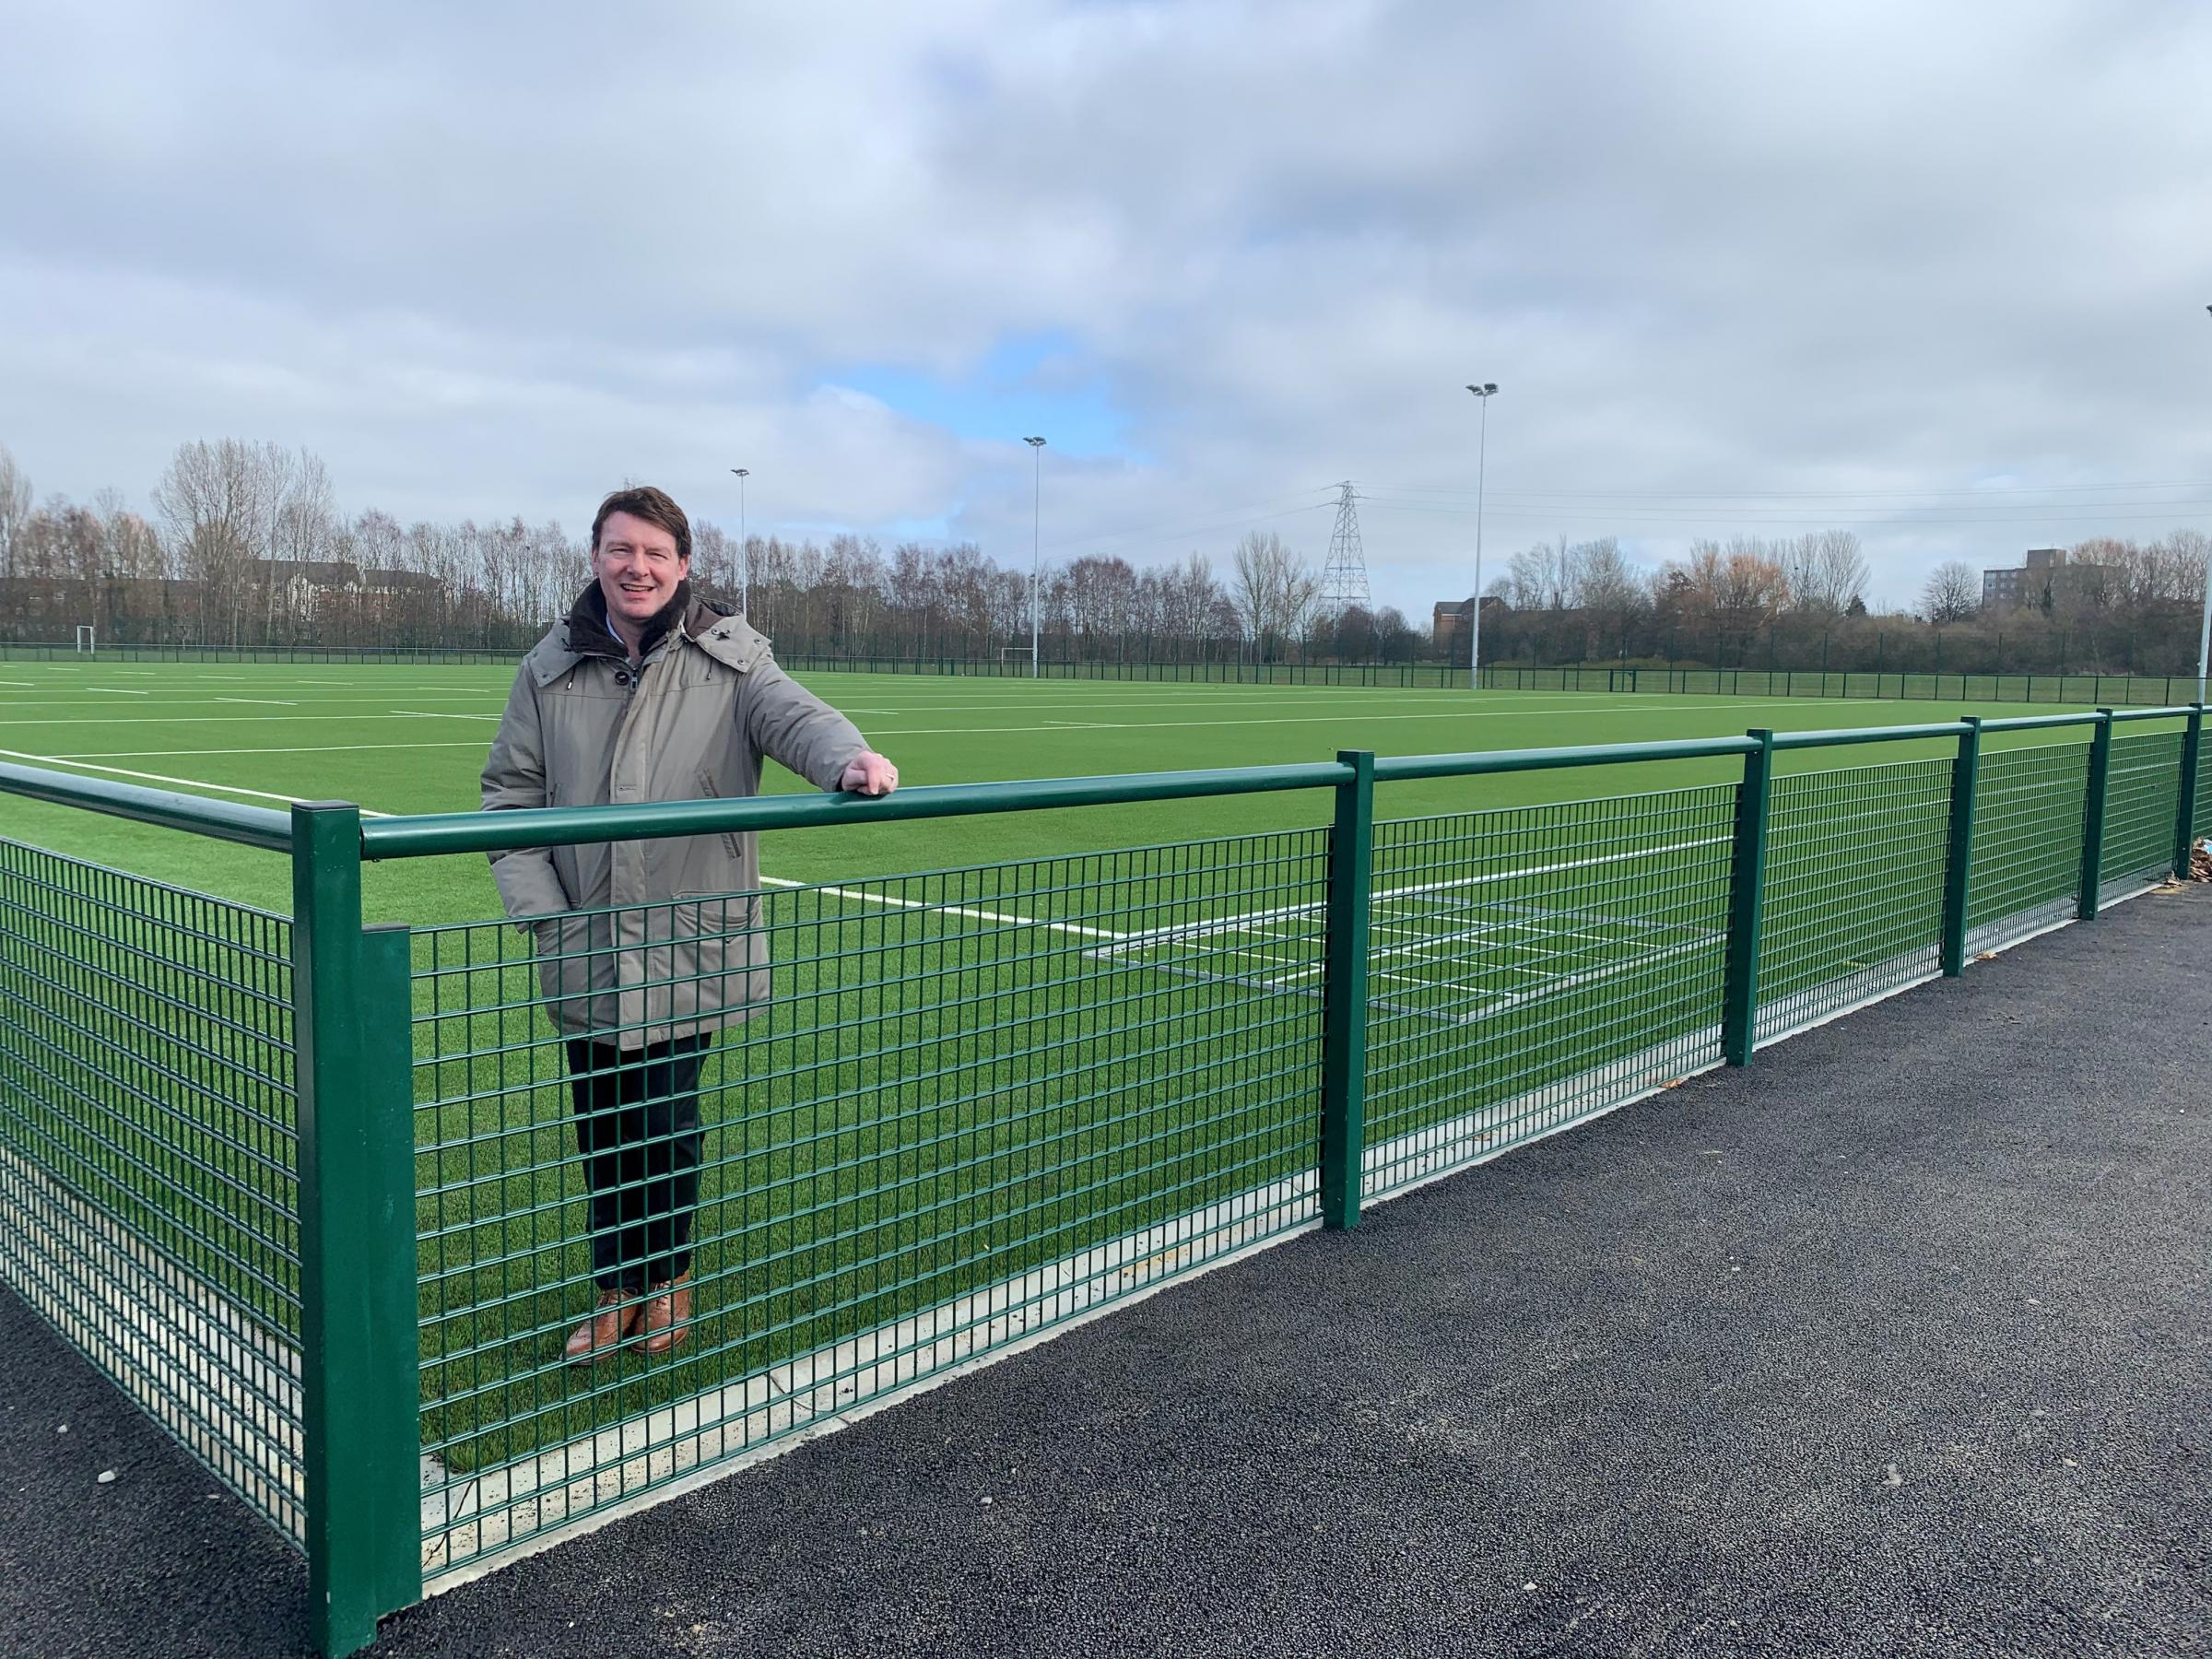 New 3G pitch in park nearing completion as part of Rugby League World Cup legacy